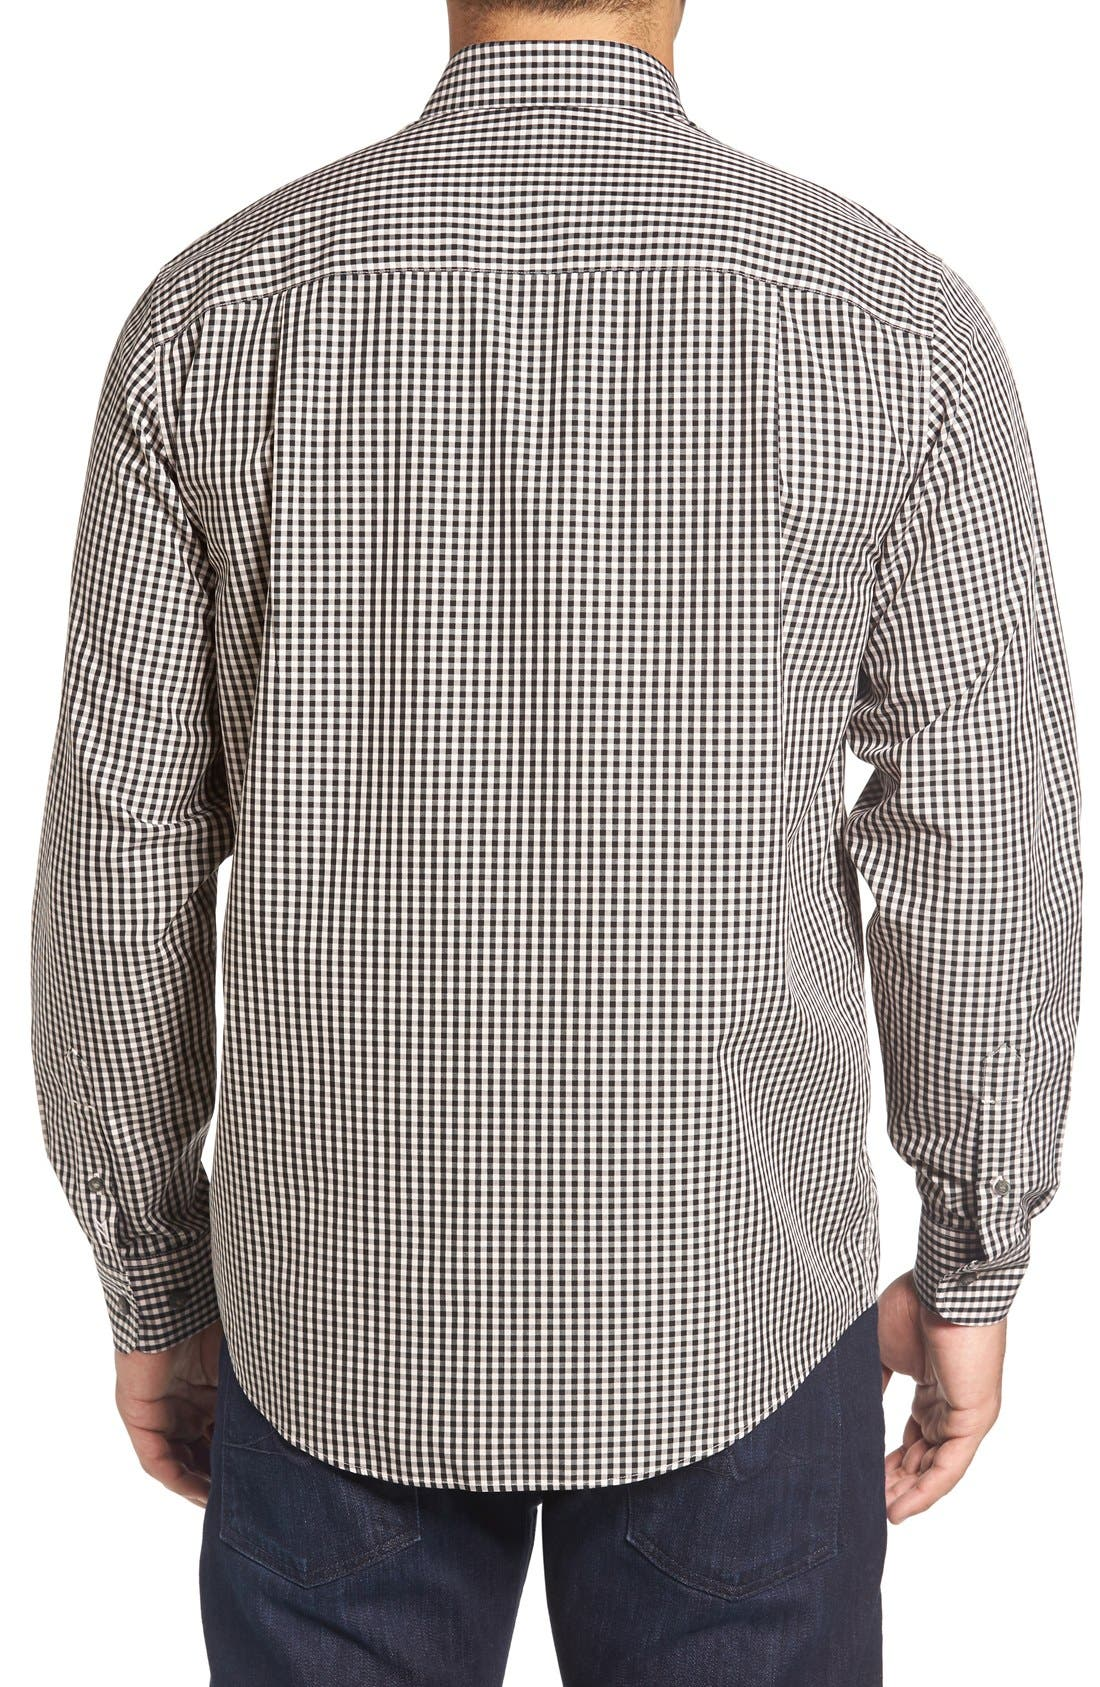 'Willard' Check Sport Shirt,                             Alternate thumbnail 3, color,                             019